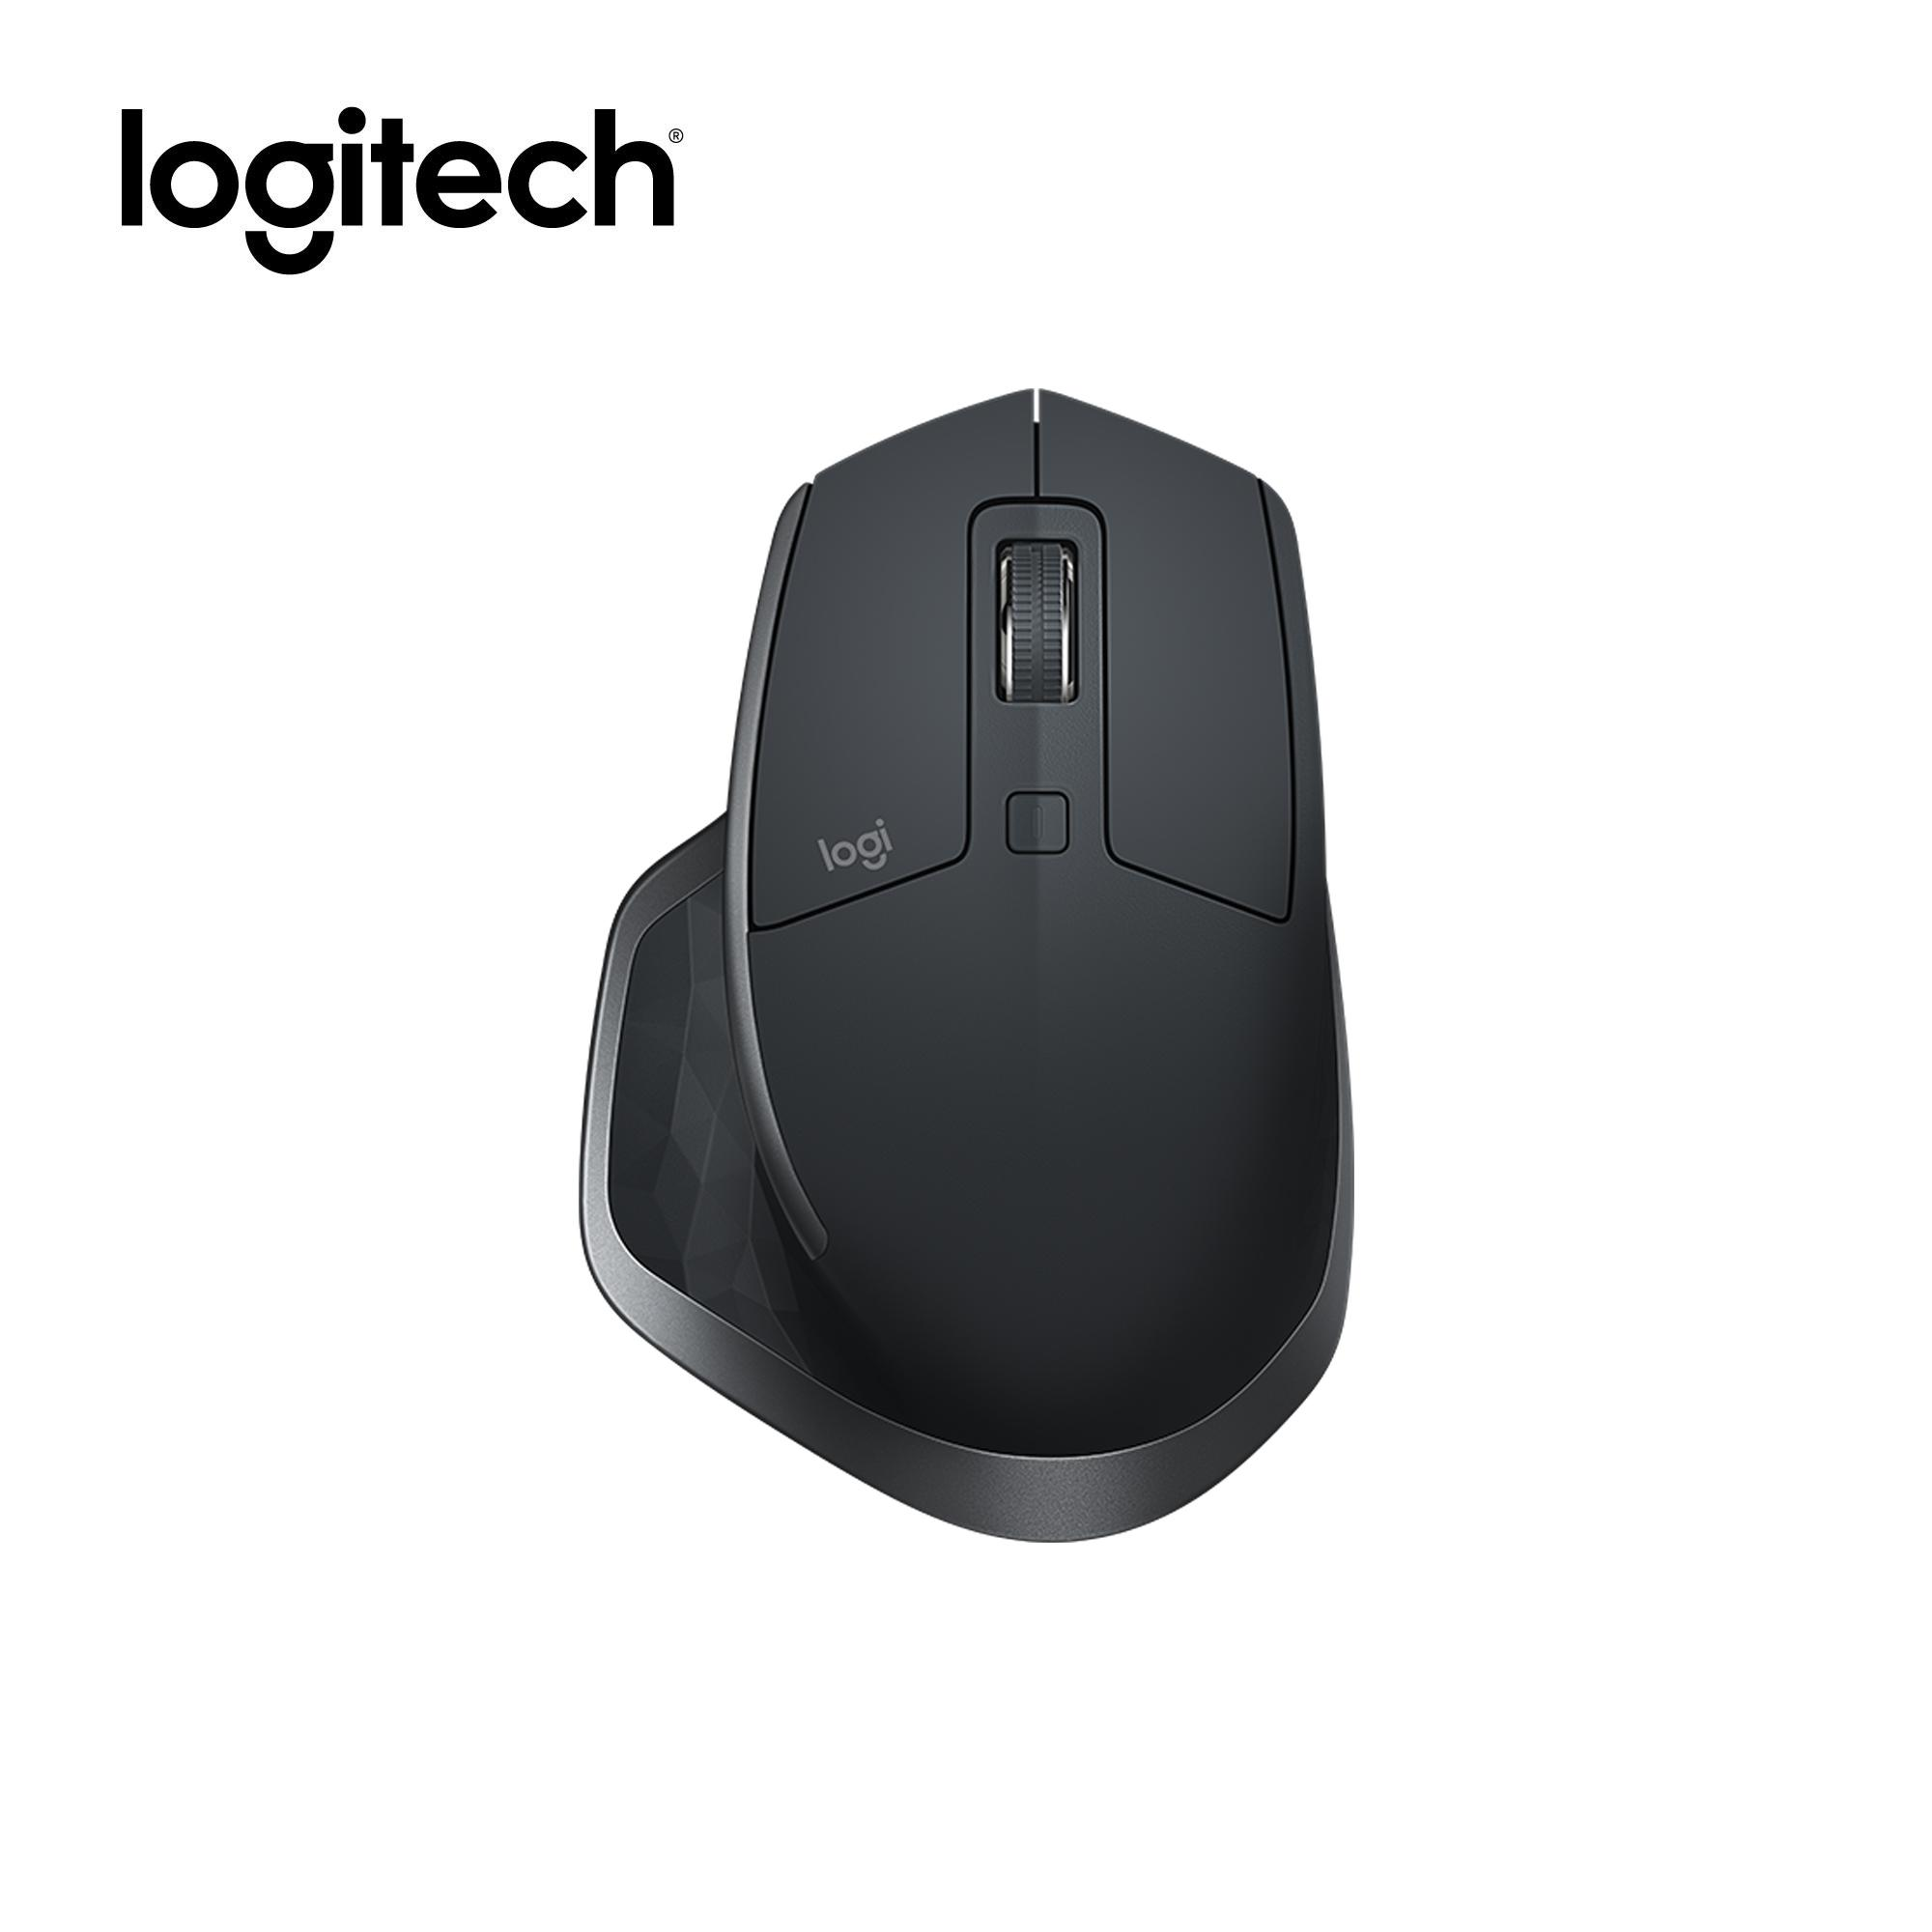 Logitech MX Master 2S Multi Device Wireless Mouse for Power Users, Logitech Flow, 4000 dpi Darkfield precision sensor, Hyper-efficient Scrolling, Unifying receiver, Bluetooth, 10m wireless range, 2.4Ghz connection, Micro-USB cable for recharging